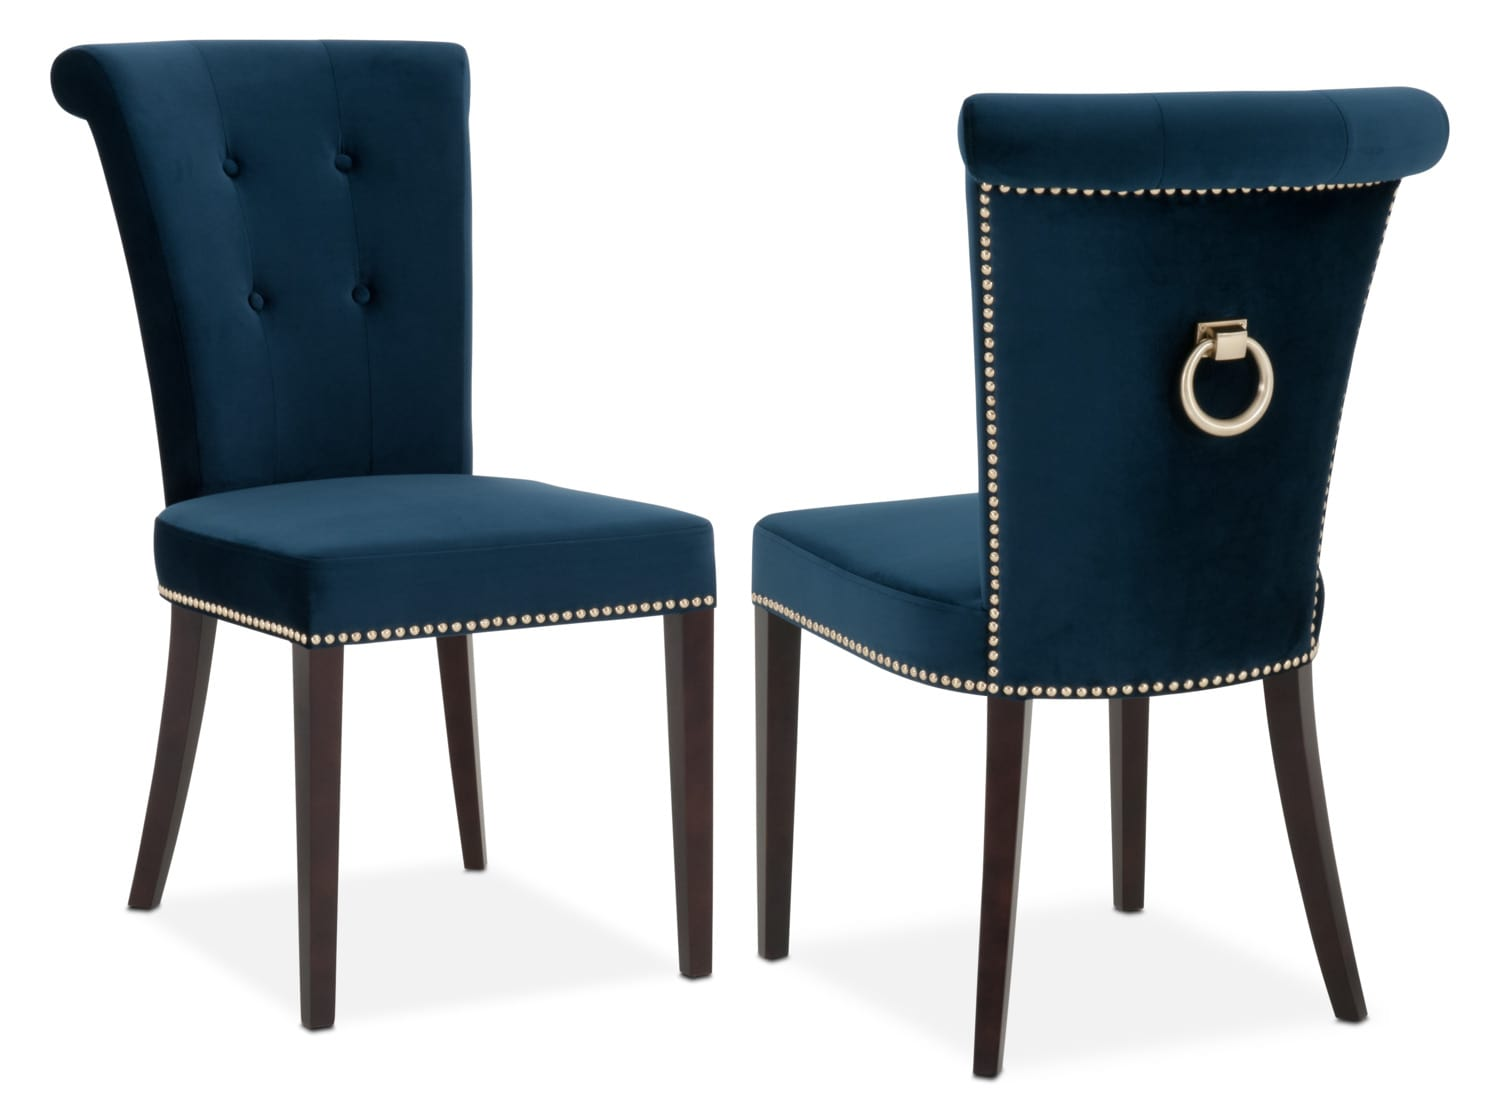 Calloway Side Chair - Navy/Gold | Value City Furniture and ...